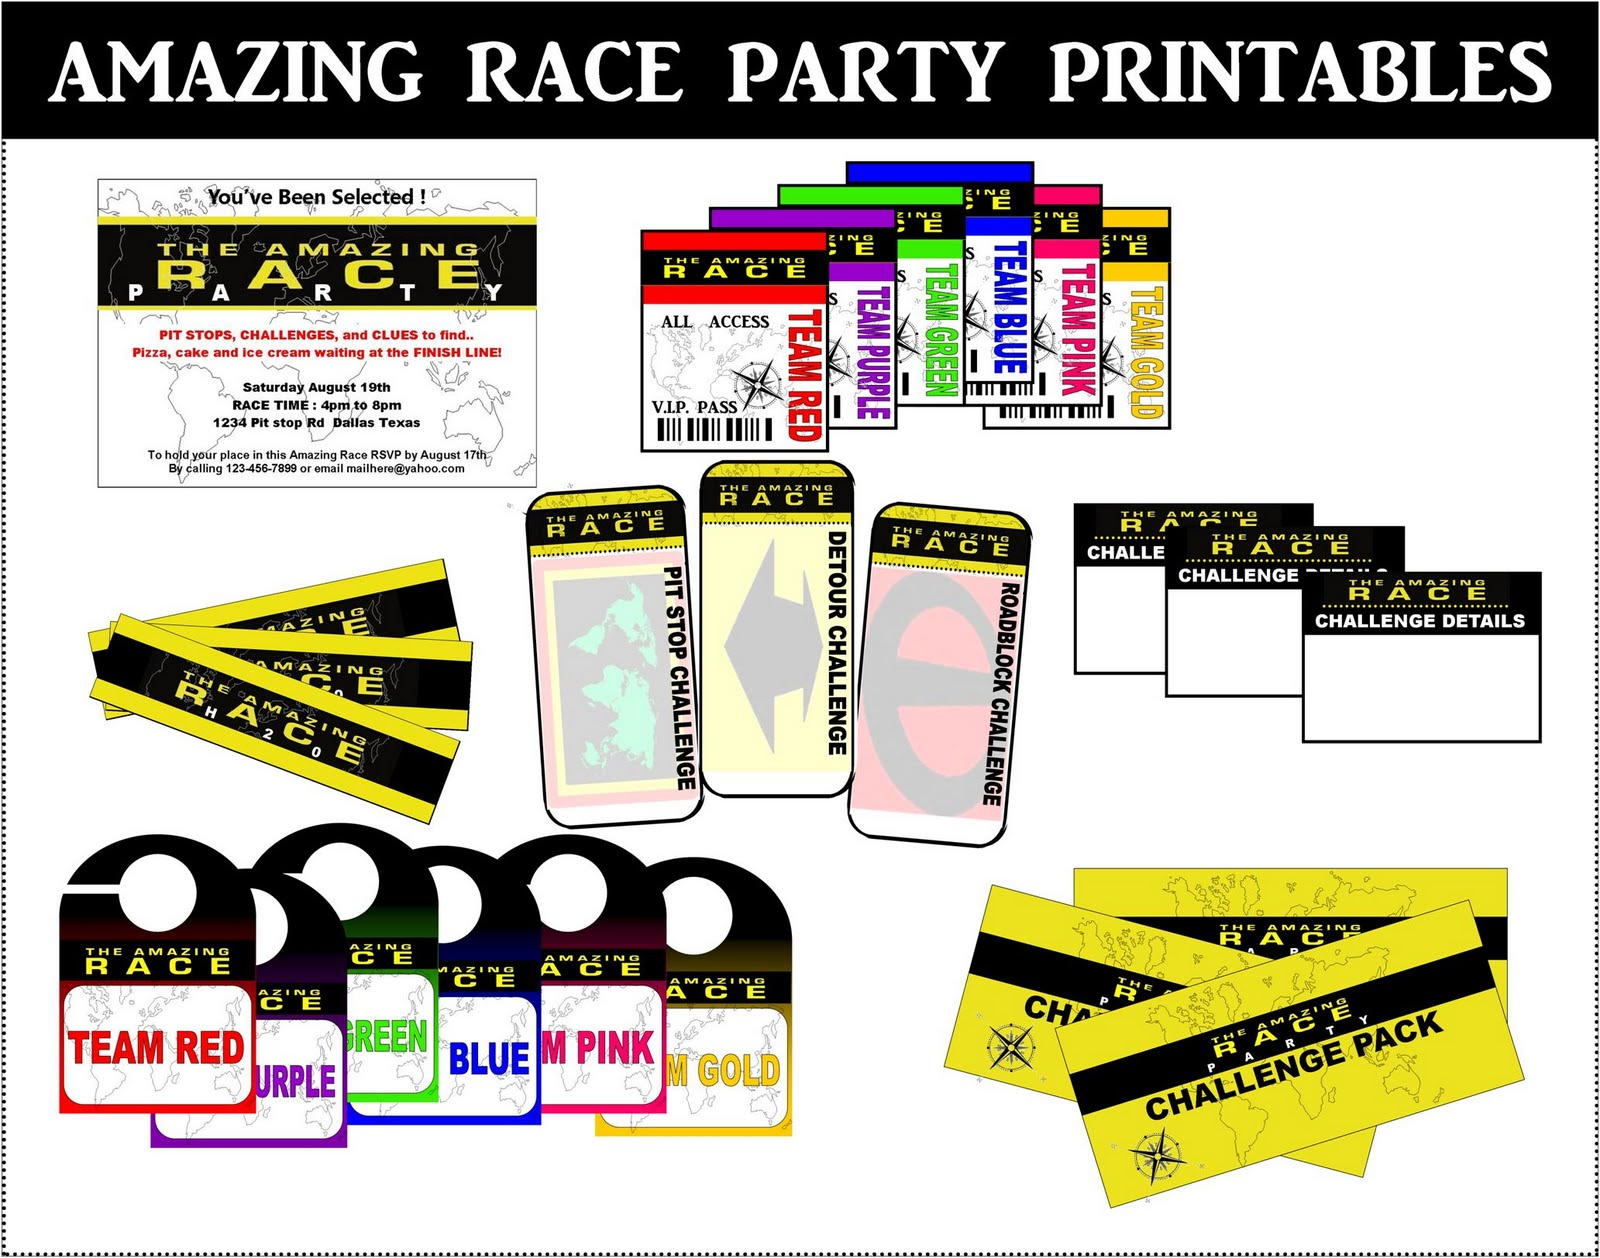 Amazing race ideas - Amazing Race Party Printables Product Review